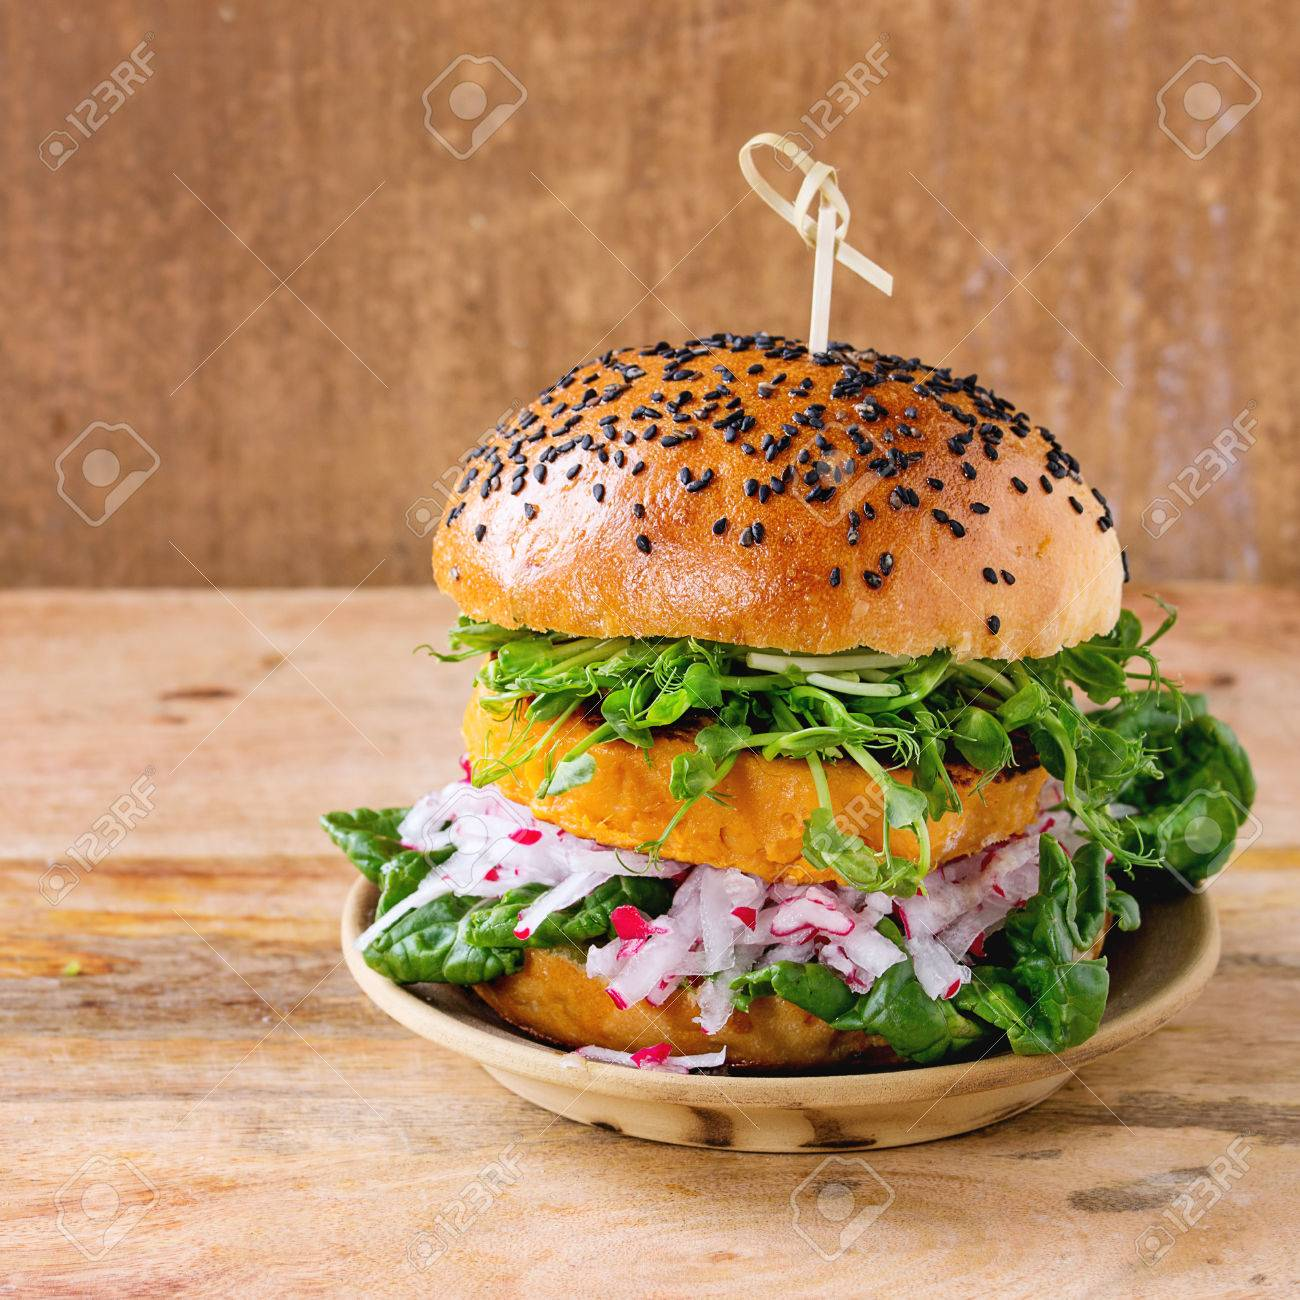 Homemade veggie sweet potato burger with fresh radish and pea sprouts served on clay plate over wooden textured background. Square image - 57591622